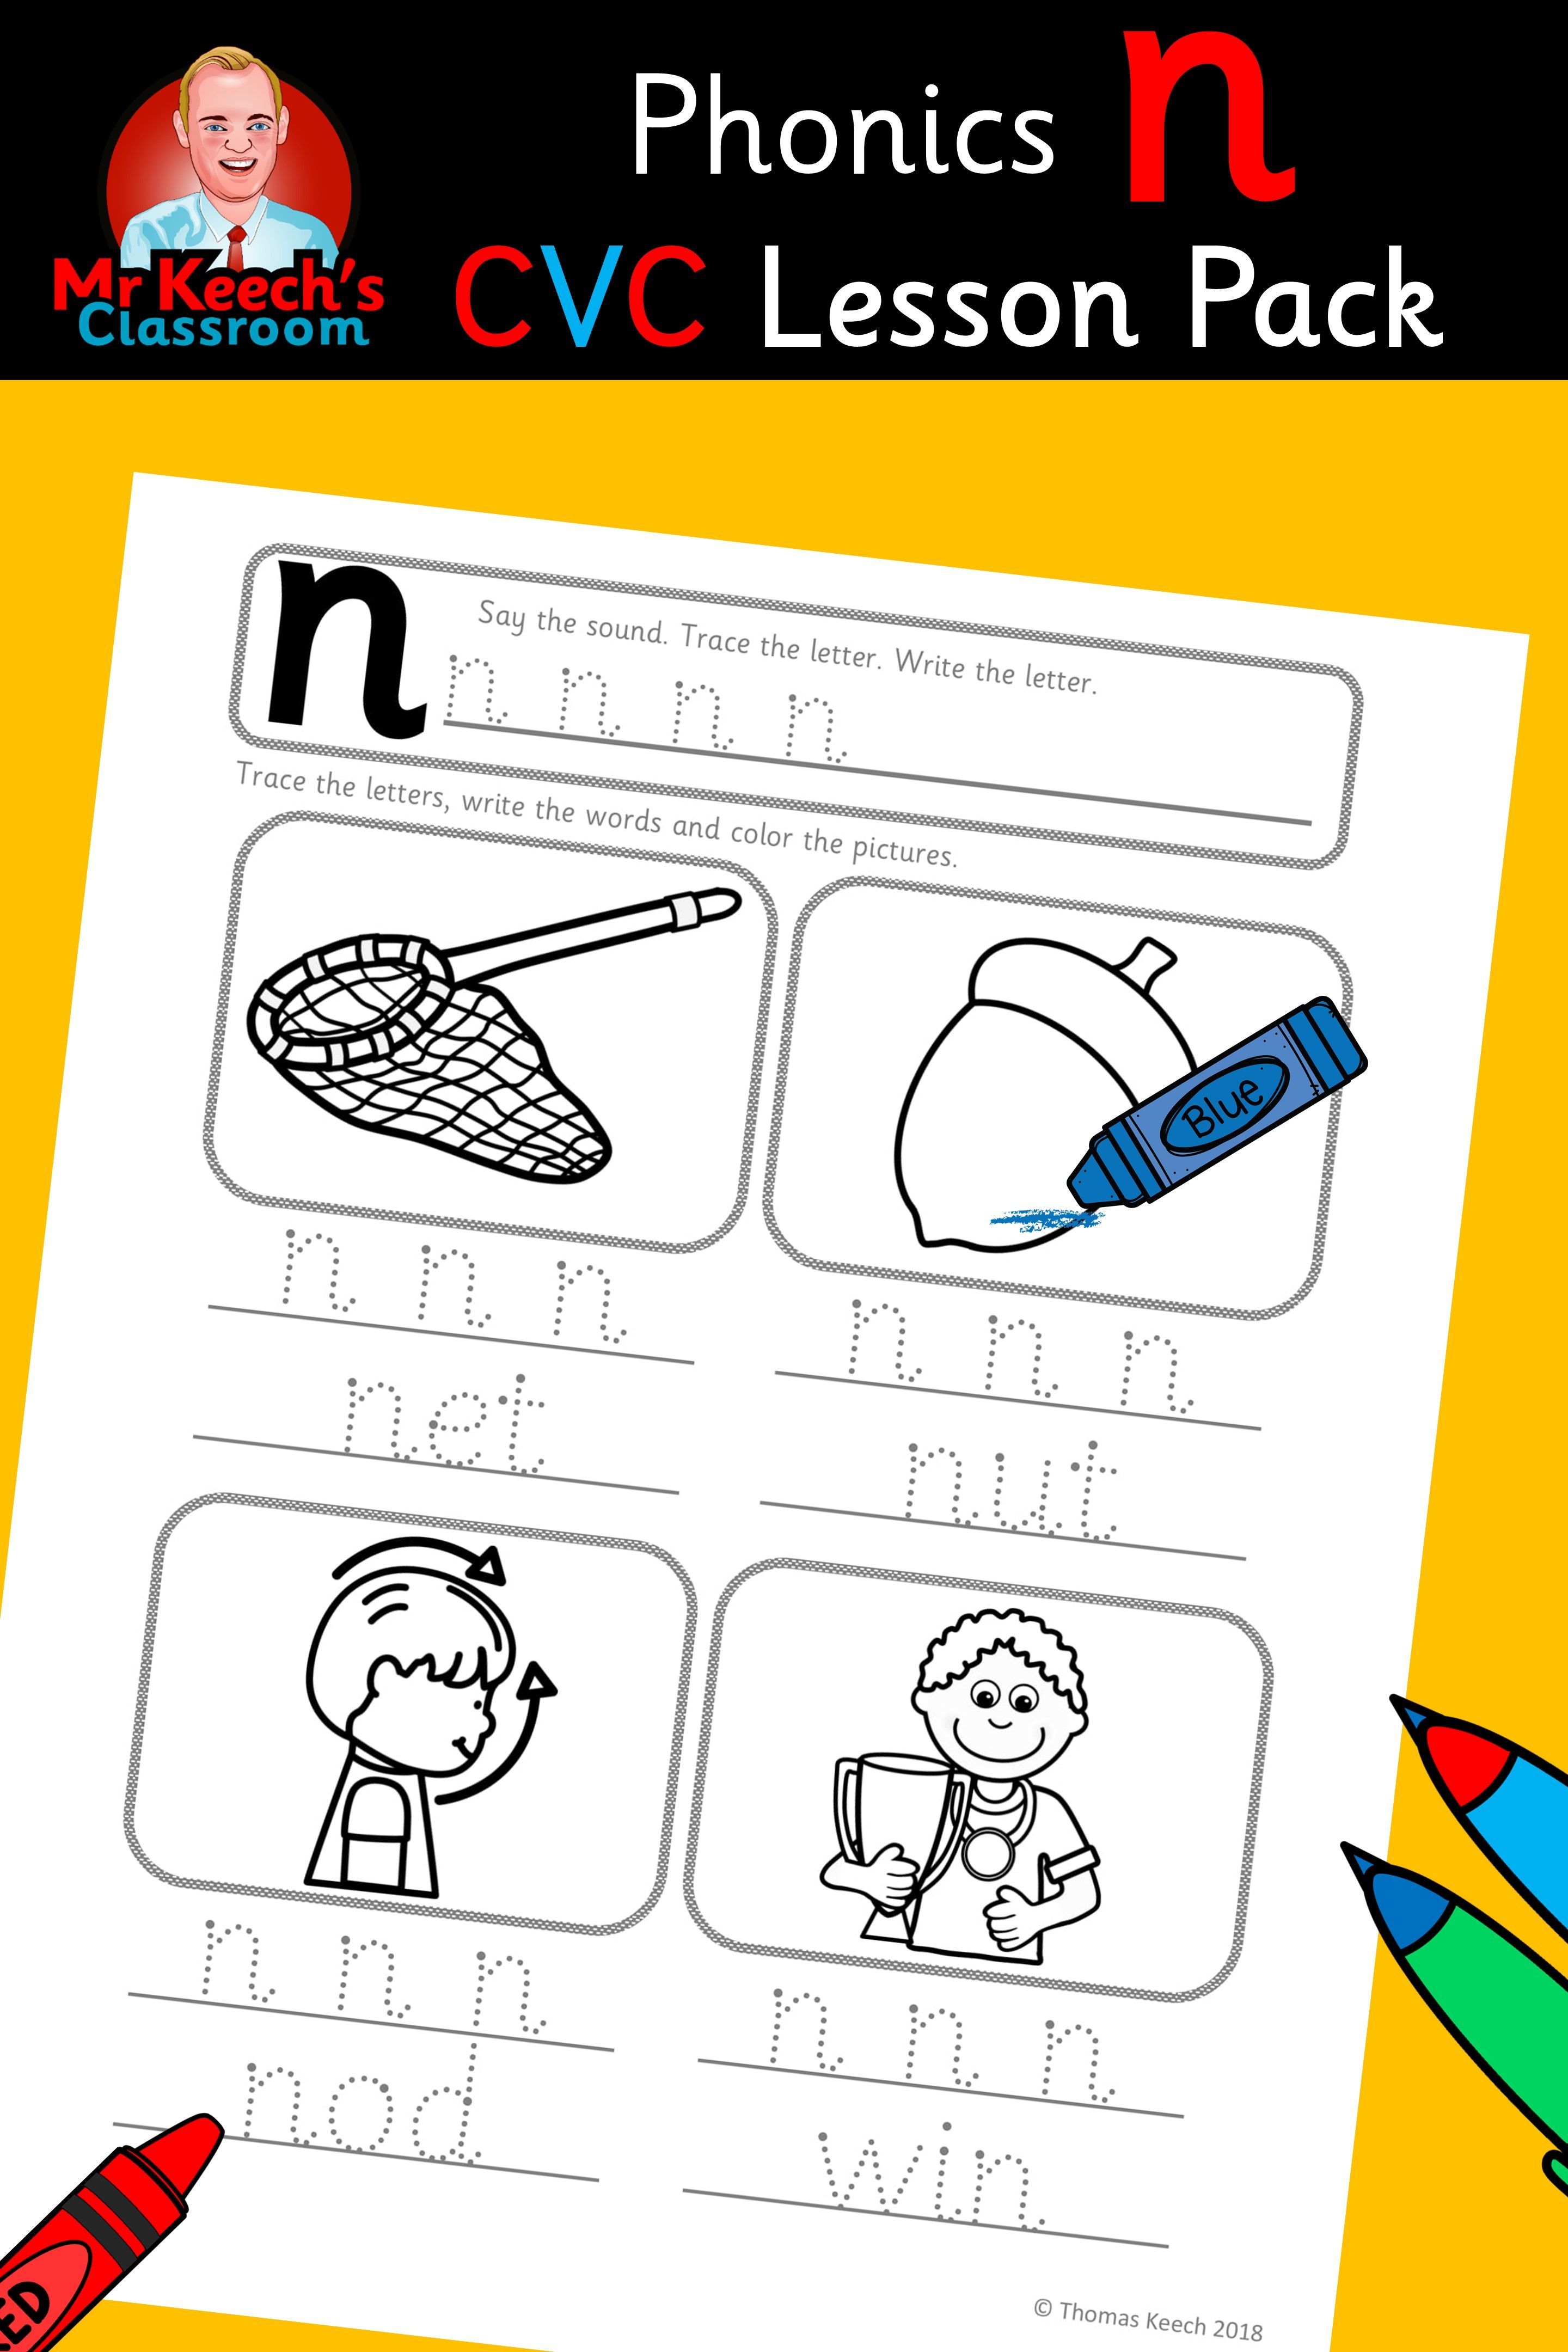 Phonics Worksheets Lesson Plan Flashcards This Nn Lesson Pack Contains Everything You Need To Teach The N Phoneme Phonics Worksheets Jolly Phonics Phonics [ 4320 x 2880 Pixel ]